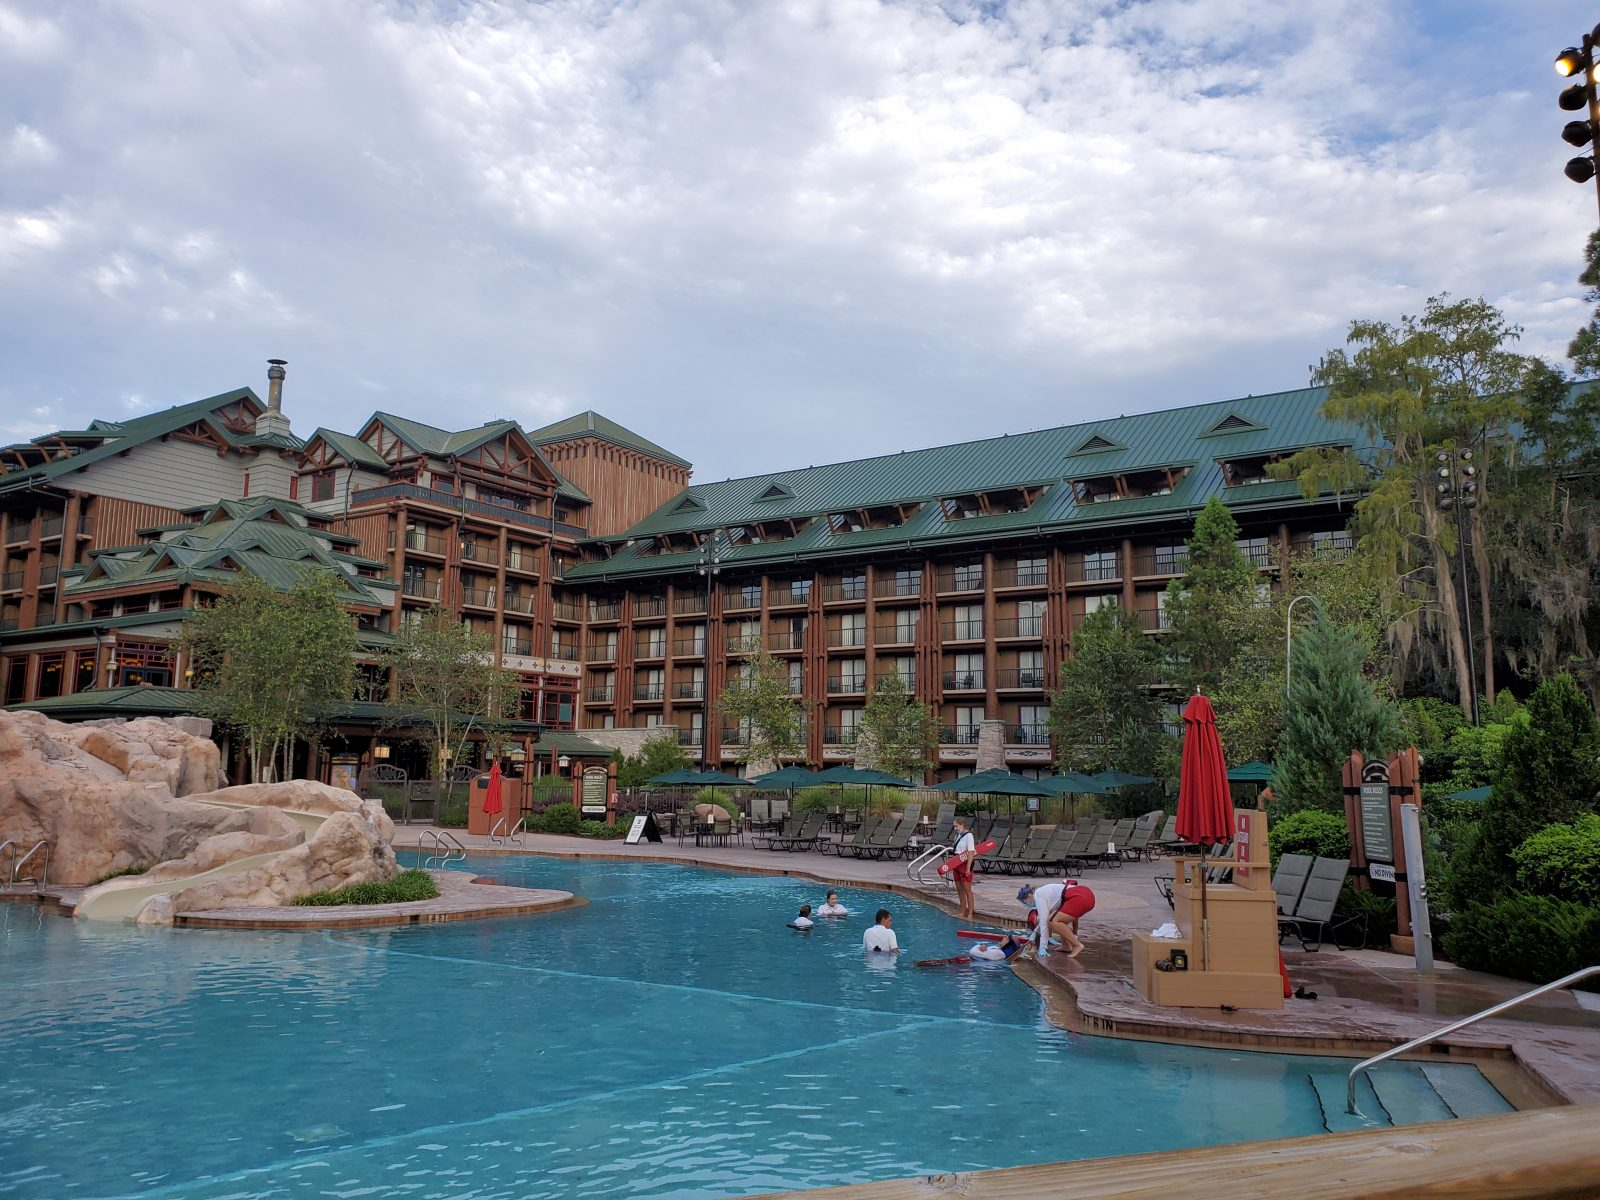 Disney's Wilderness Lodge Resort pool